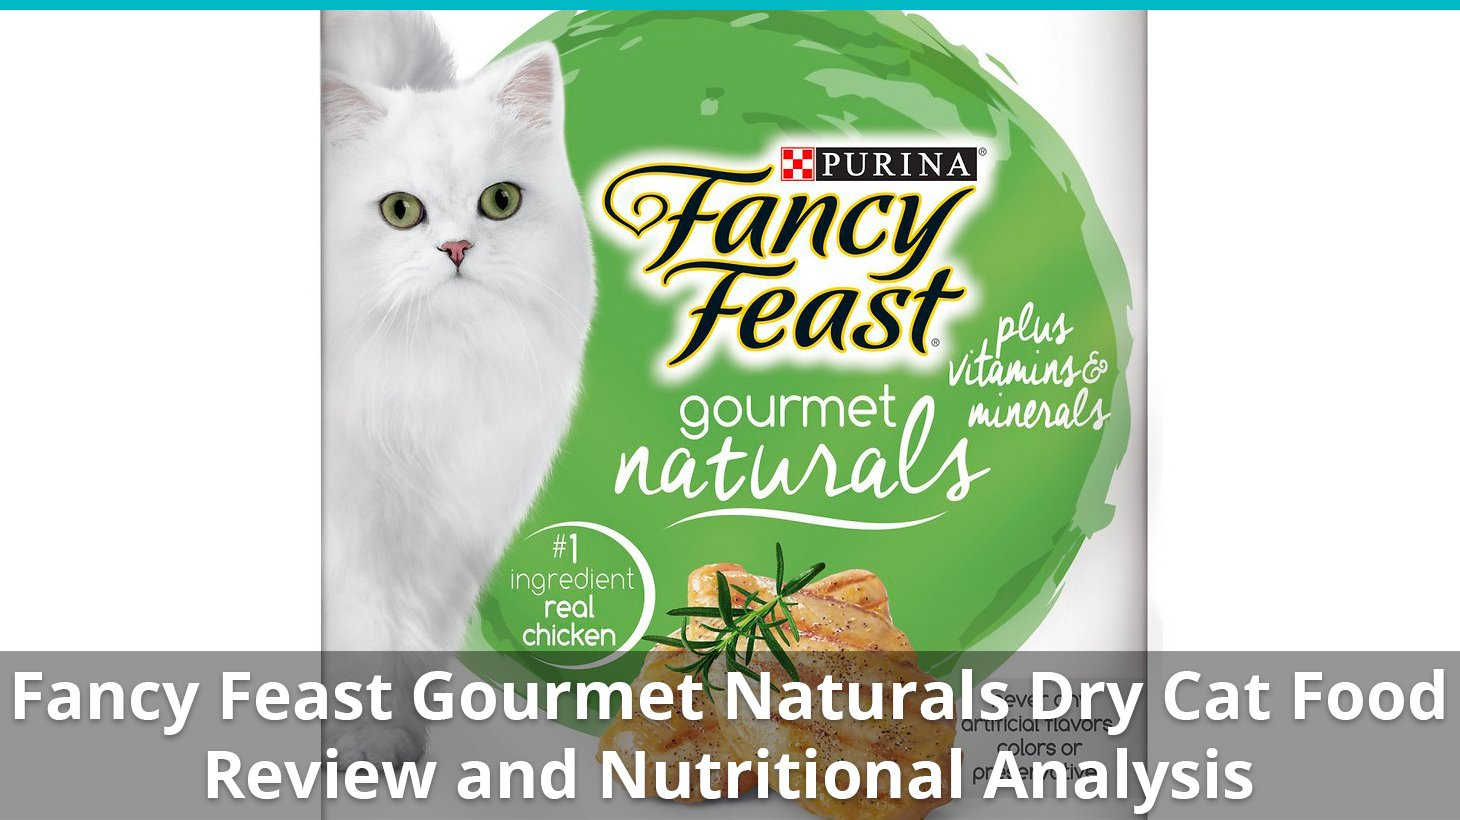 Fancy Feast Gourmet Naturals Cat Food (Dry) Review And ...